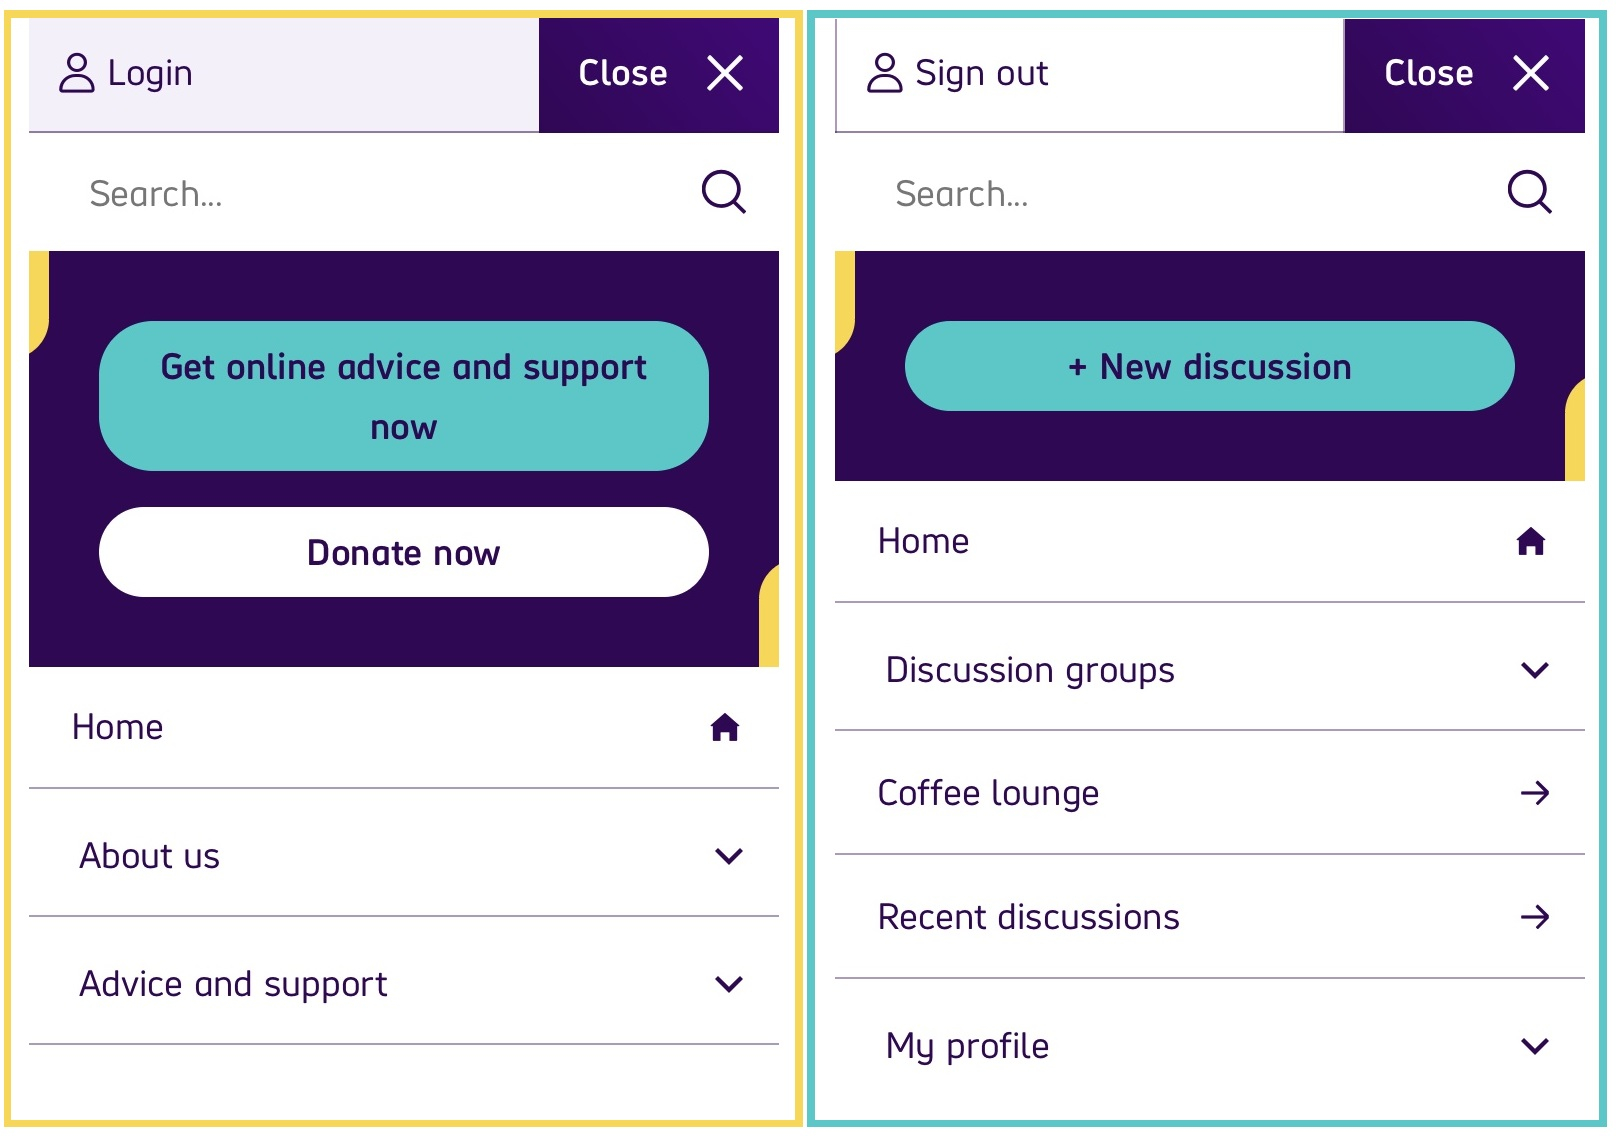 An image showing changes to the community mobile navigation menu